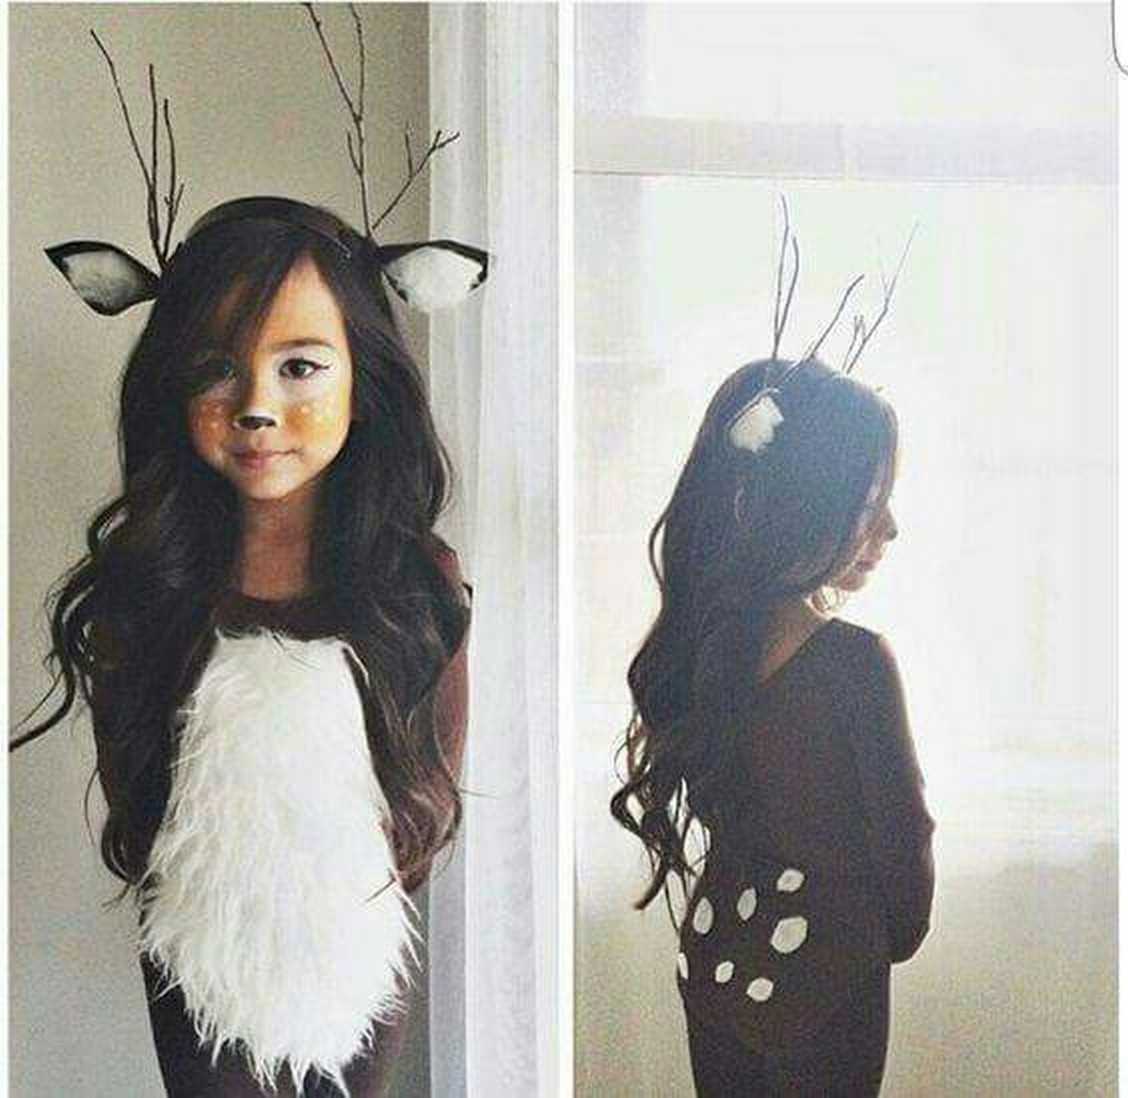 Cute baby animal costumes (10)  sc 1 st  Fashion Best & Cute baby animal costumes (10) - Fashion Best